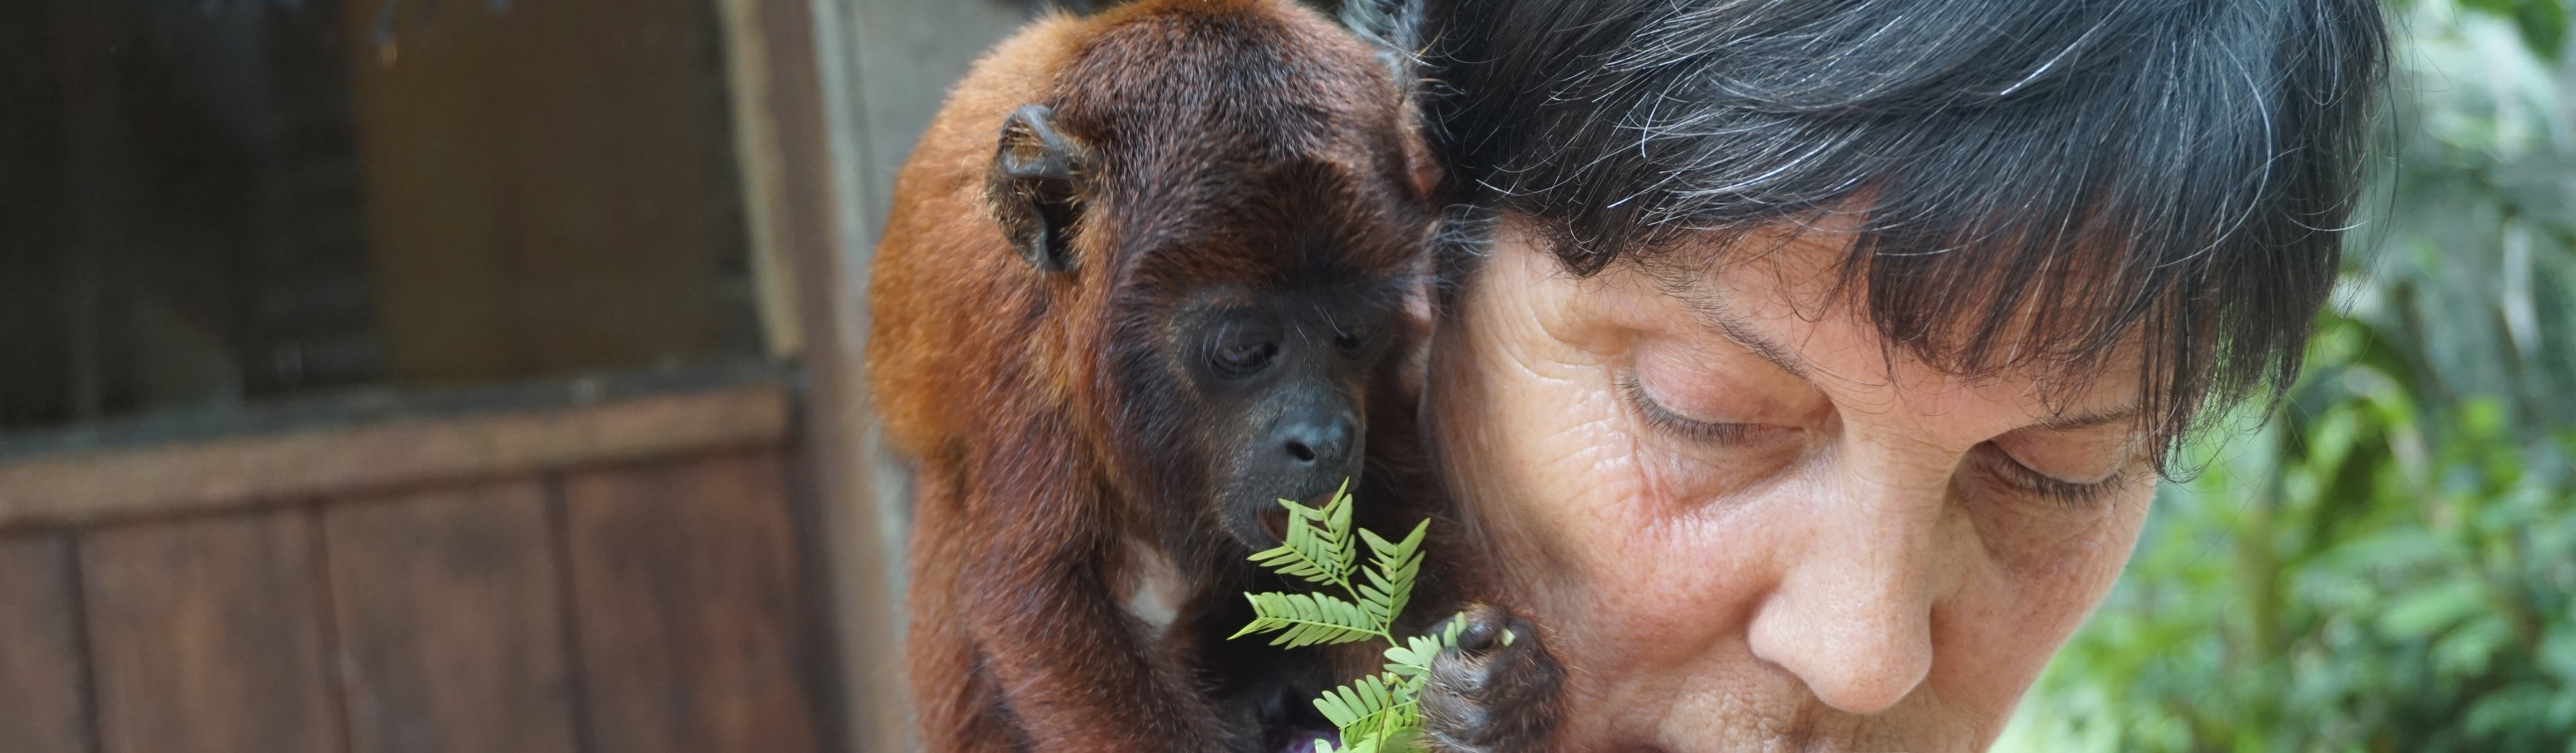 Volunteer with wildlife and animals abroad